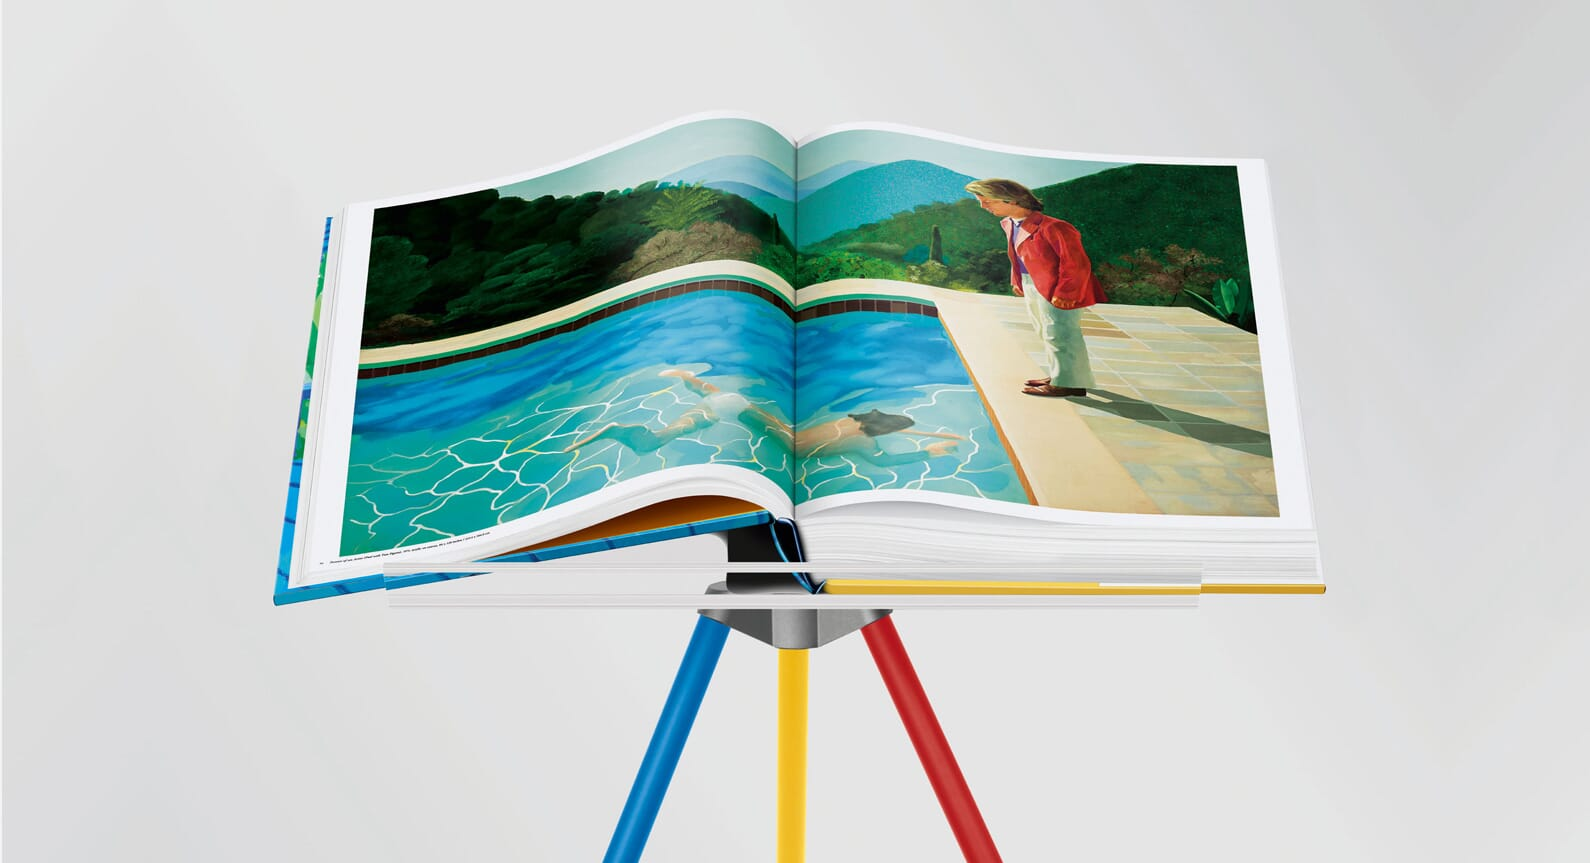 Delve Into David Hockney's Oeuvre With 'A Bigger Book'